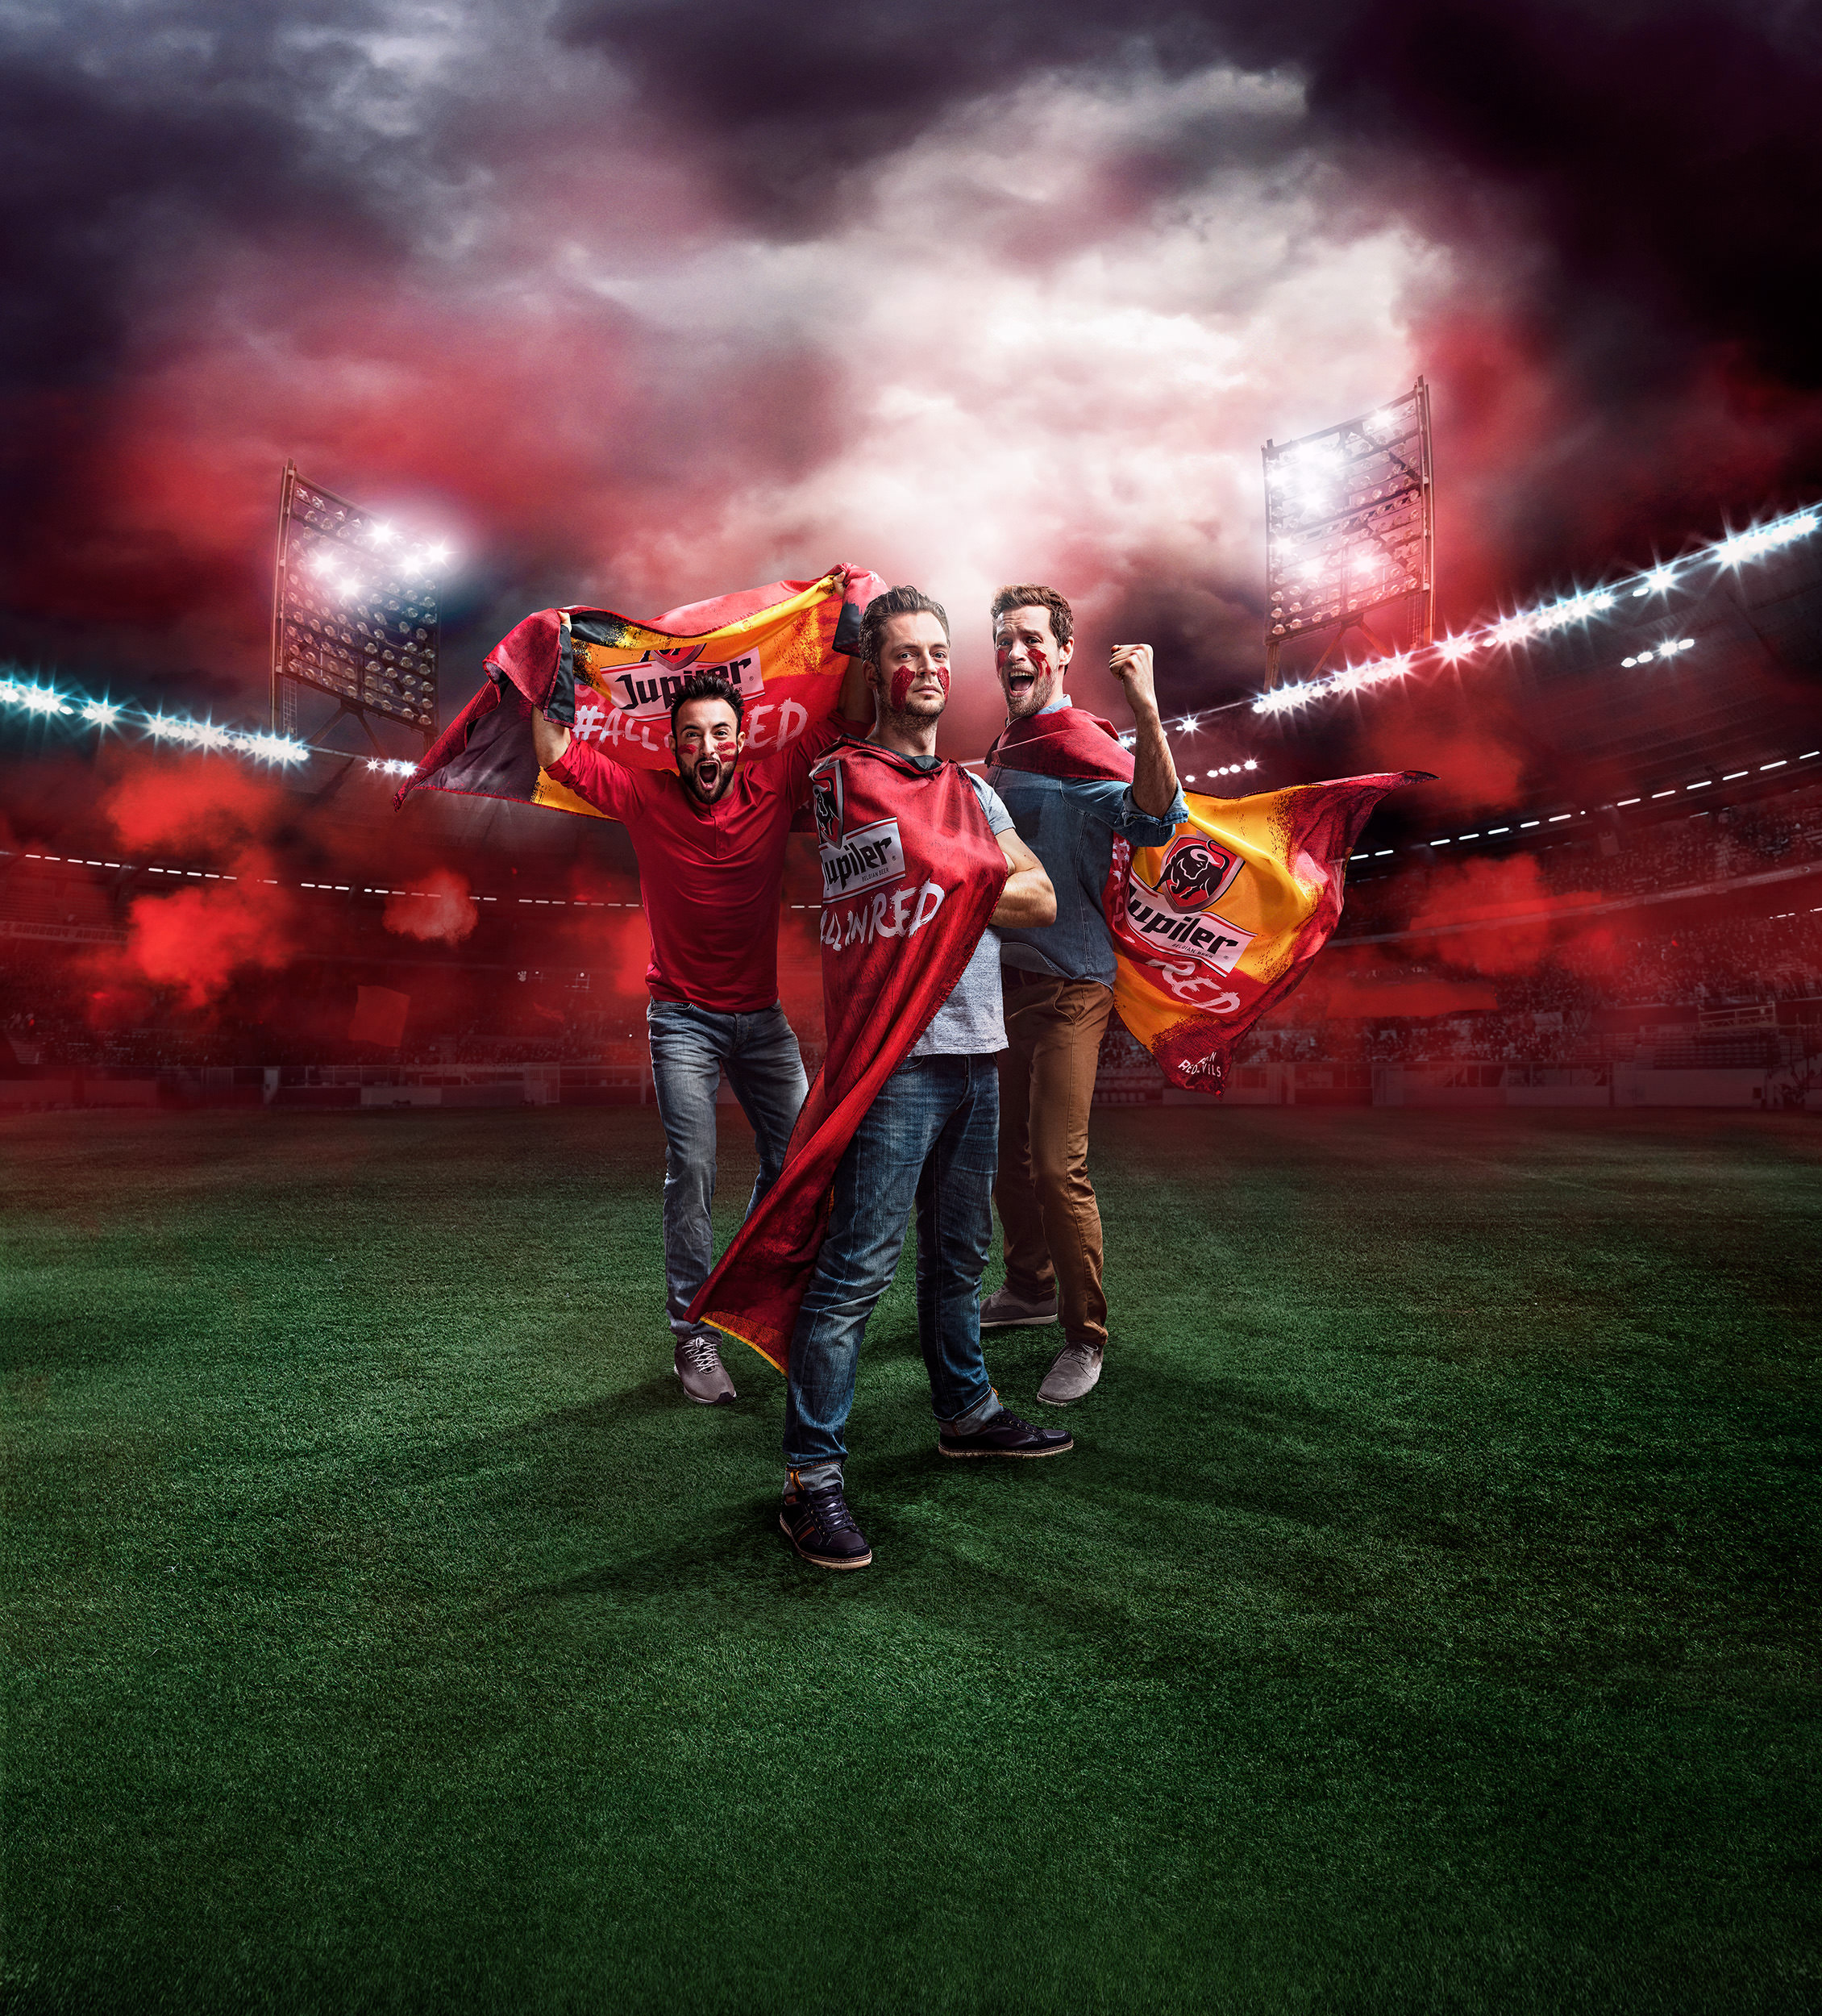 all_in_red_jupiler